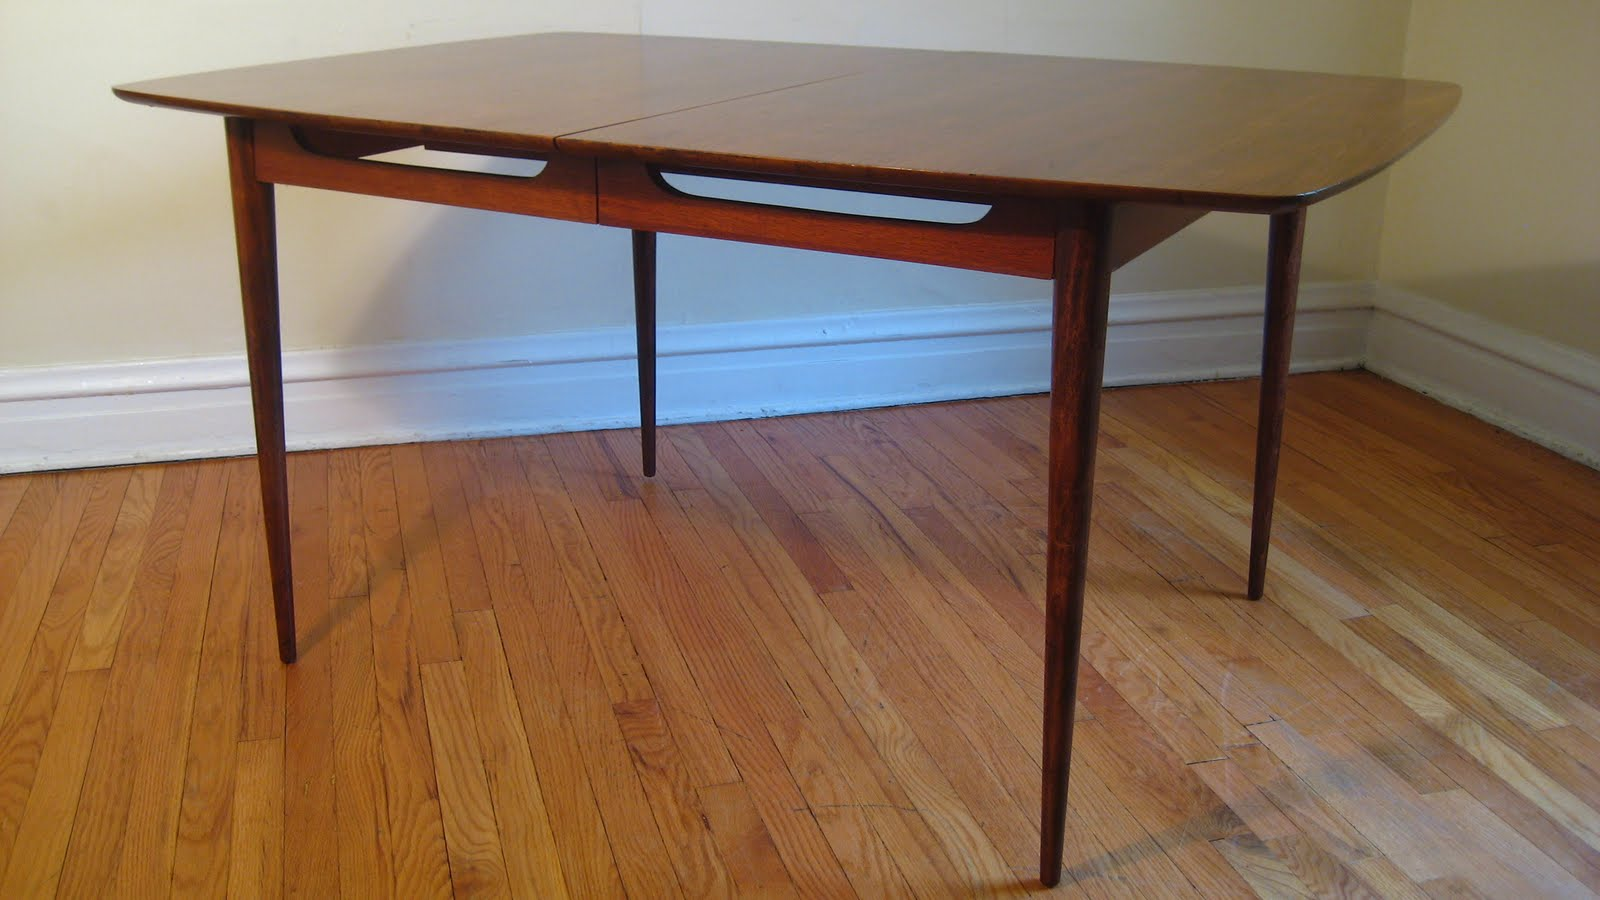 Magnificent Mid Century Dining Table 1600 x 900 · 124 kB · jpeg